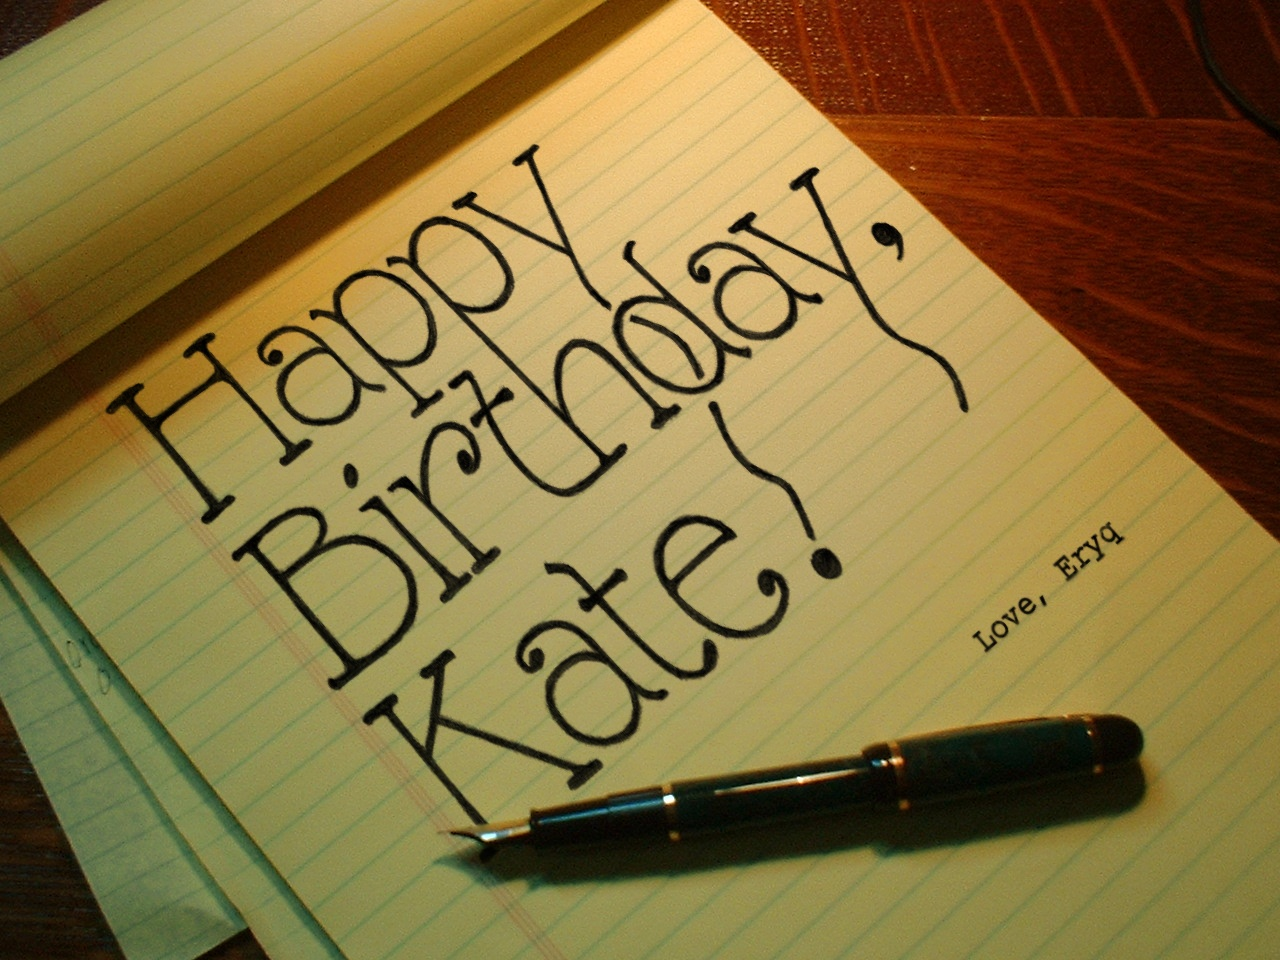 Eryq Happy Birthday Kate 2005